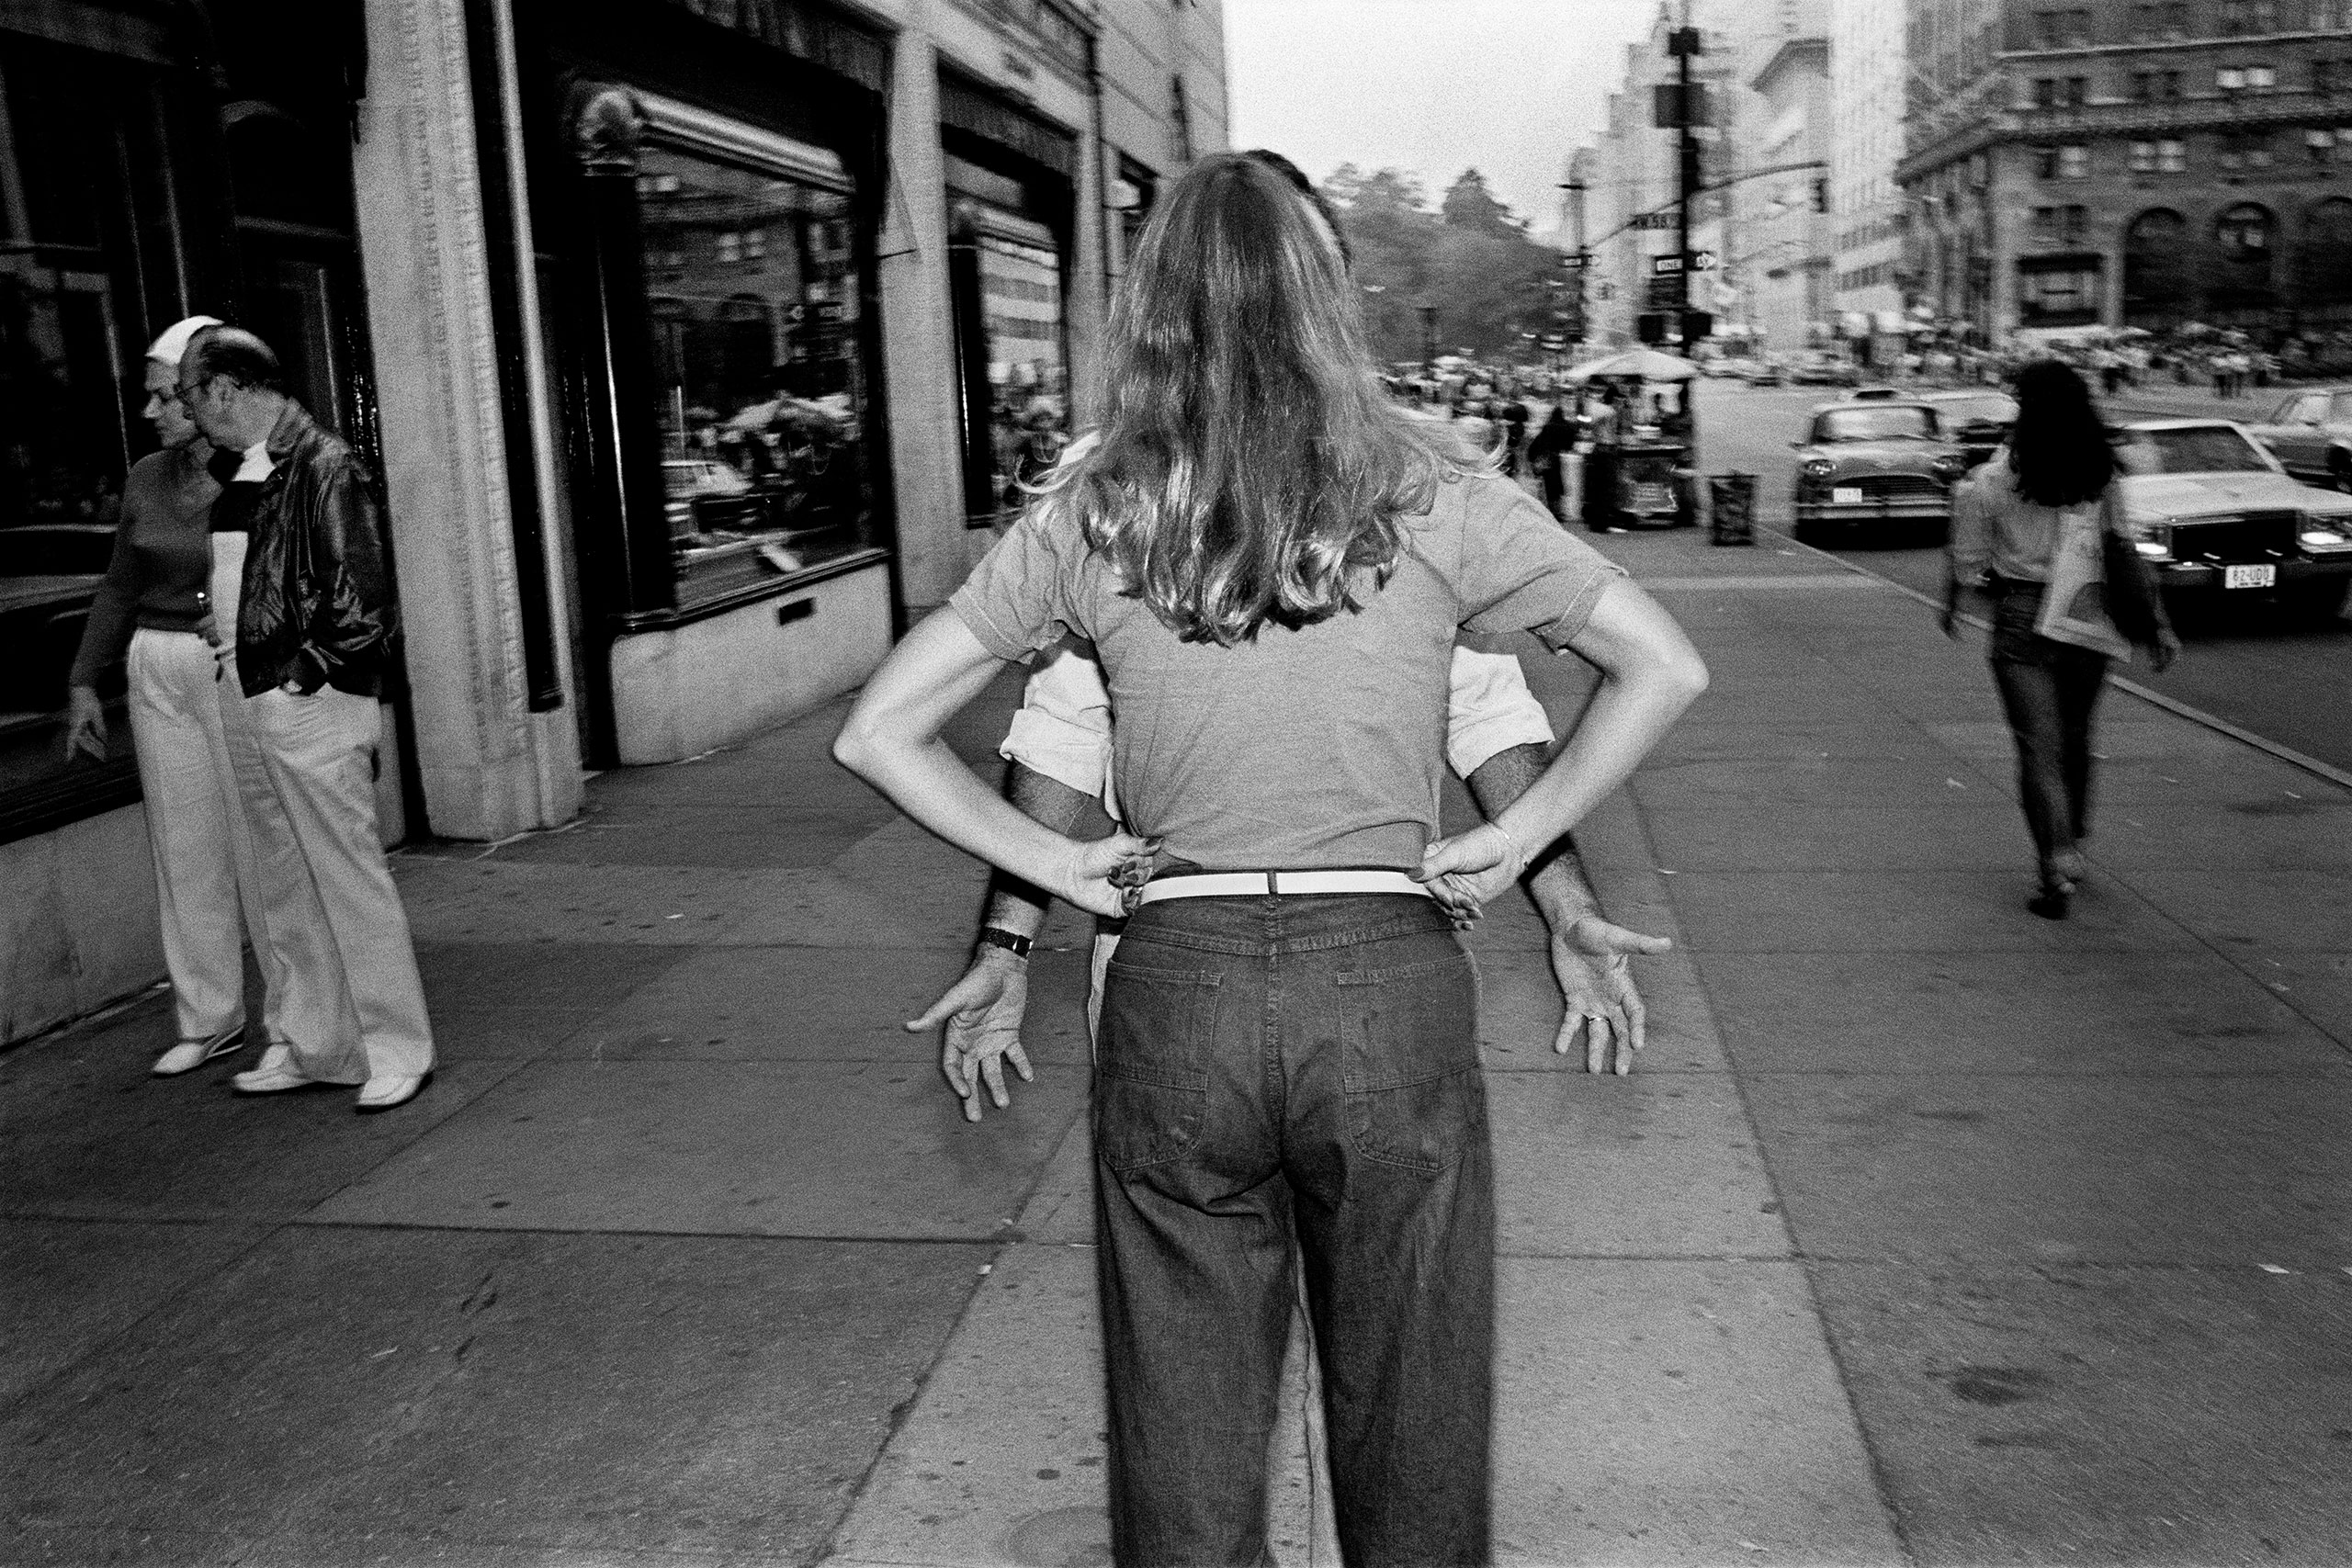 Pissed Woman, 5th Ave., NYC, 1983